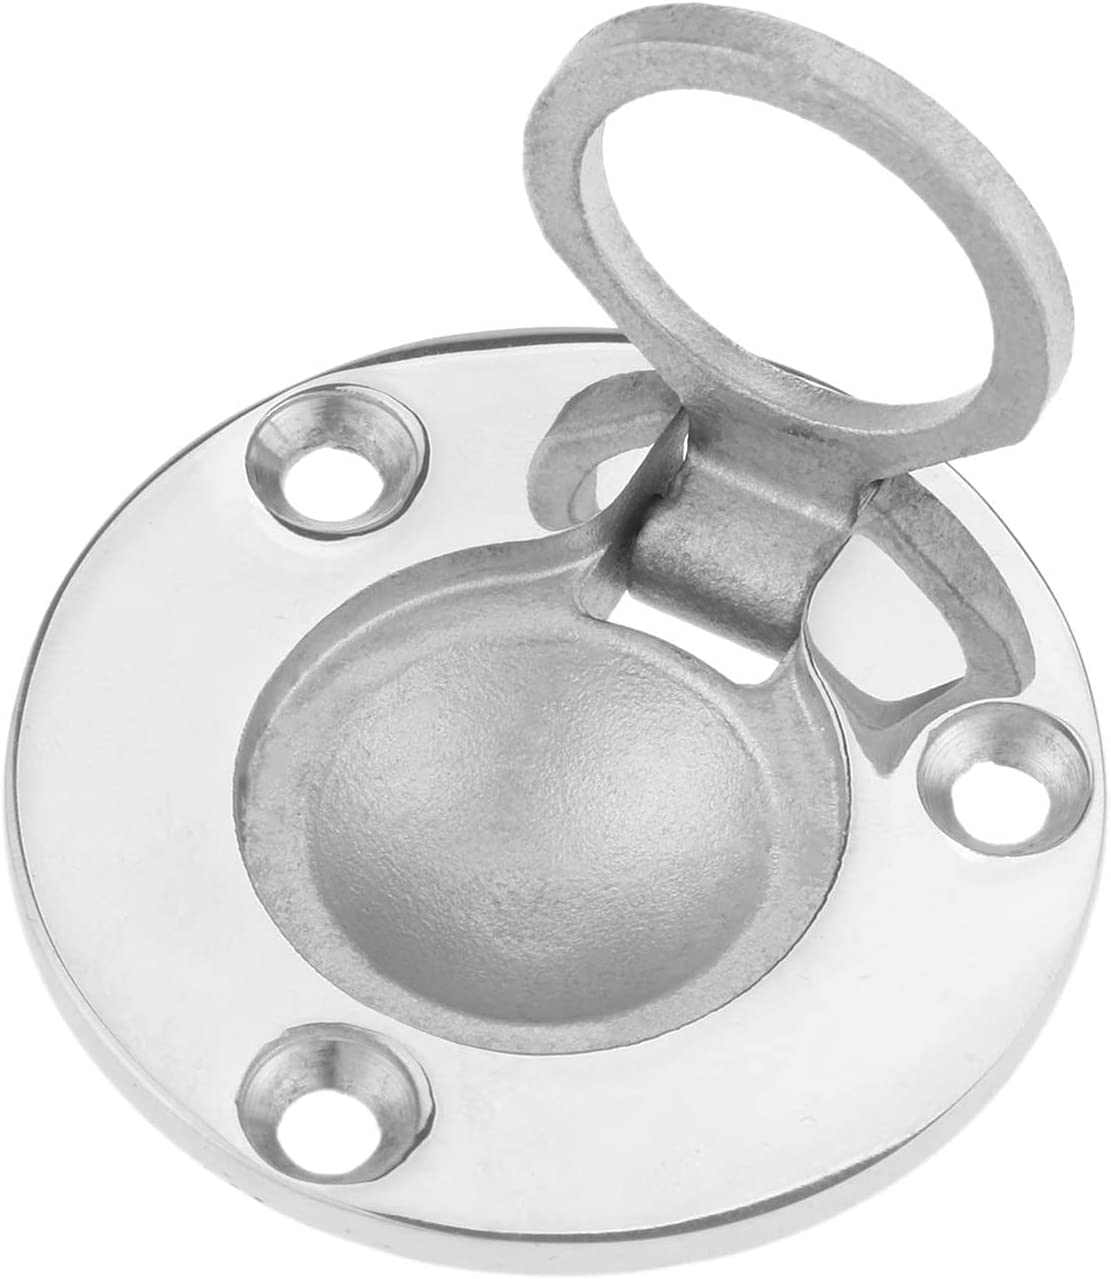 Marine Inventory cleanup selling sale Hardware 1Pc 316 Stainless Steel Hatch Handle free Boat Ring H